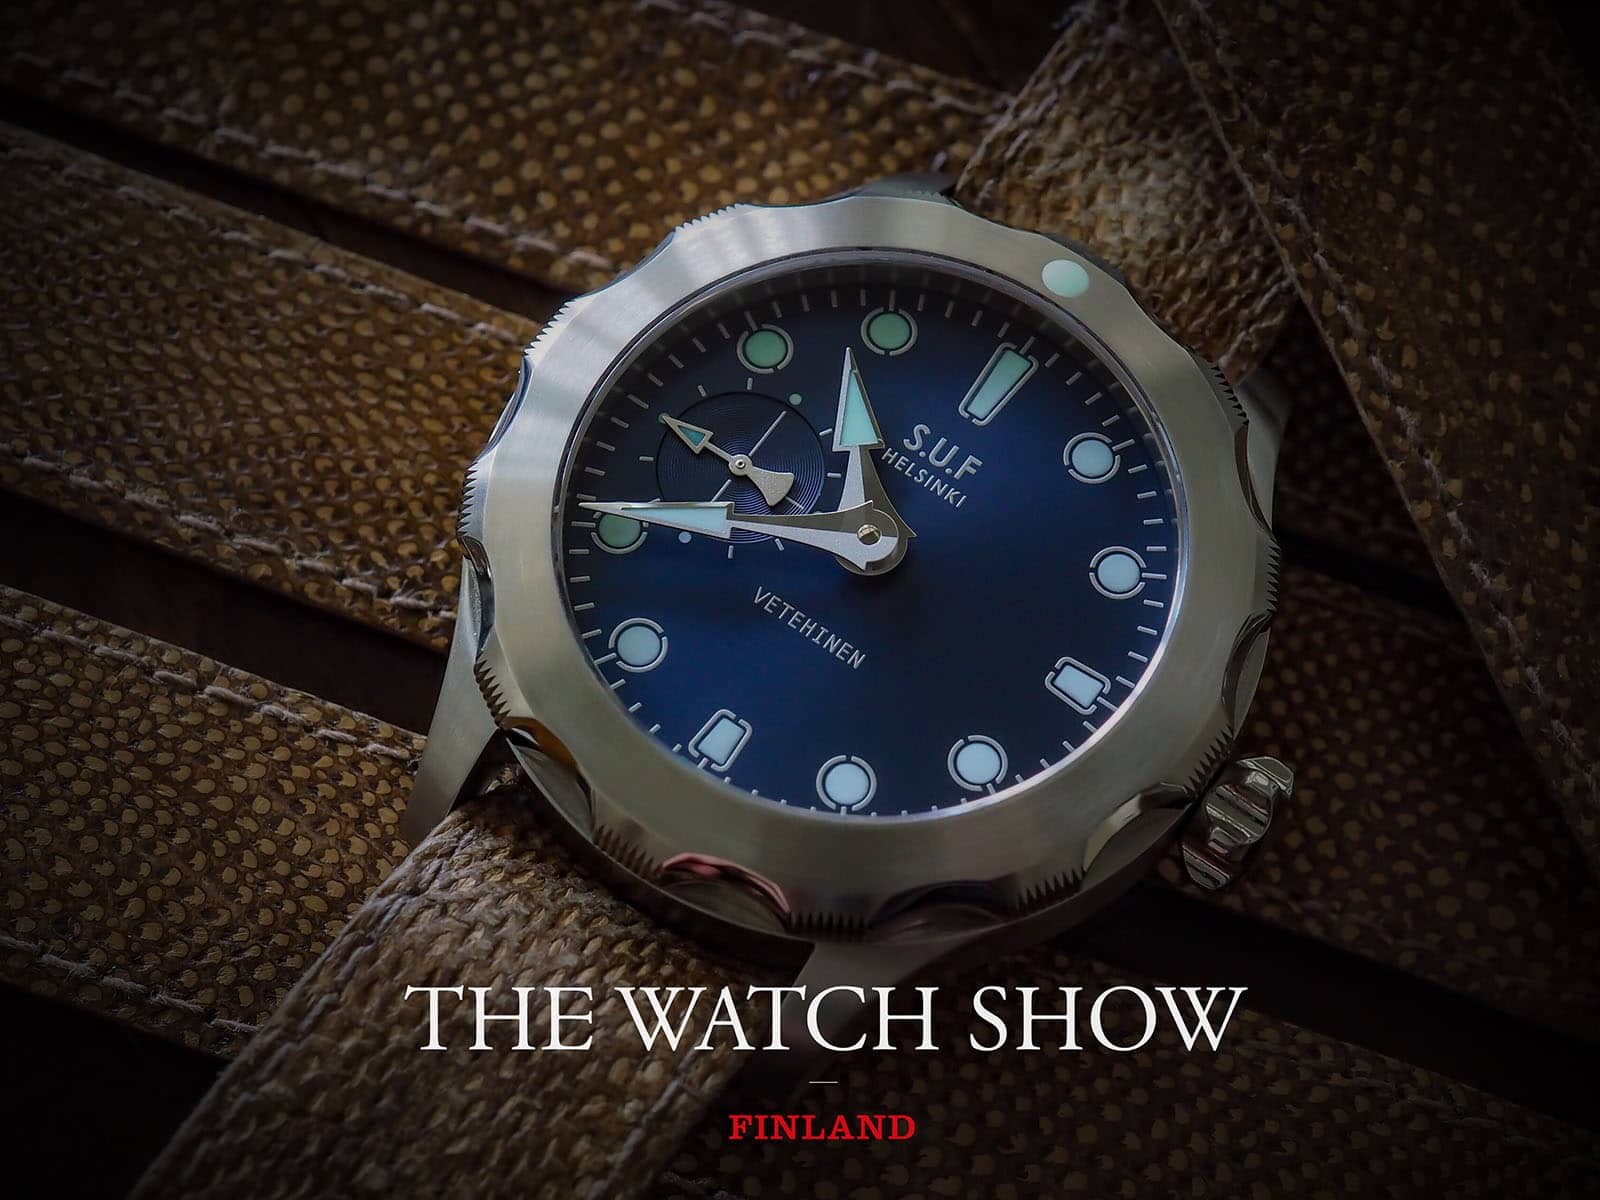 The Watch Show Finland 2017